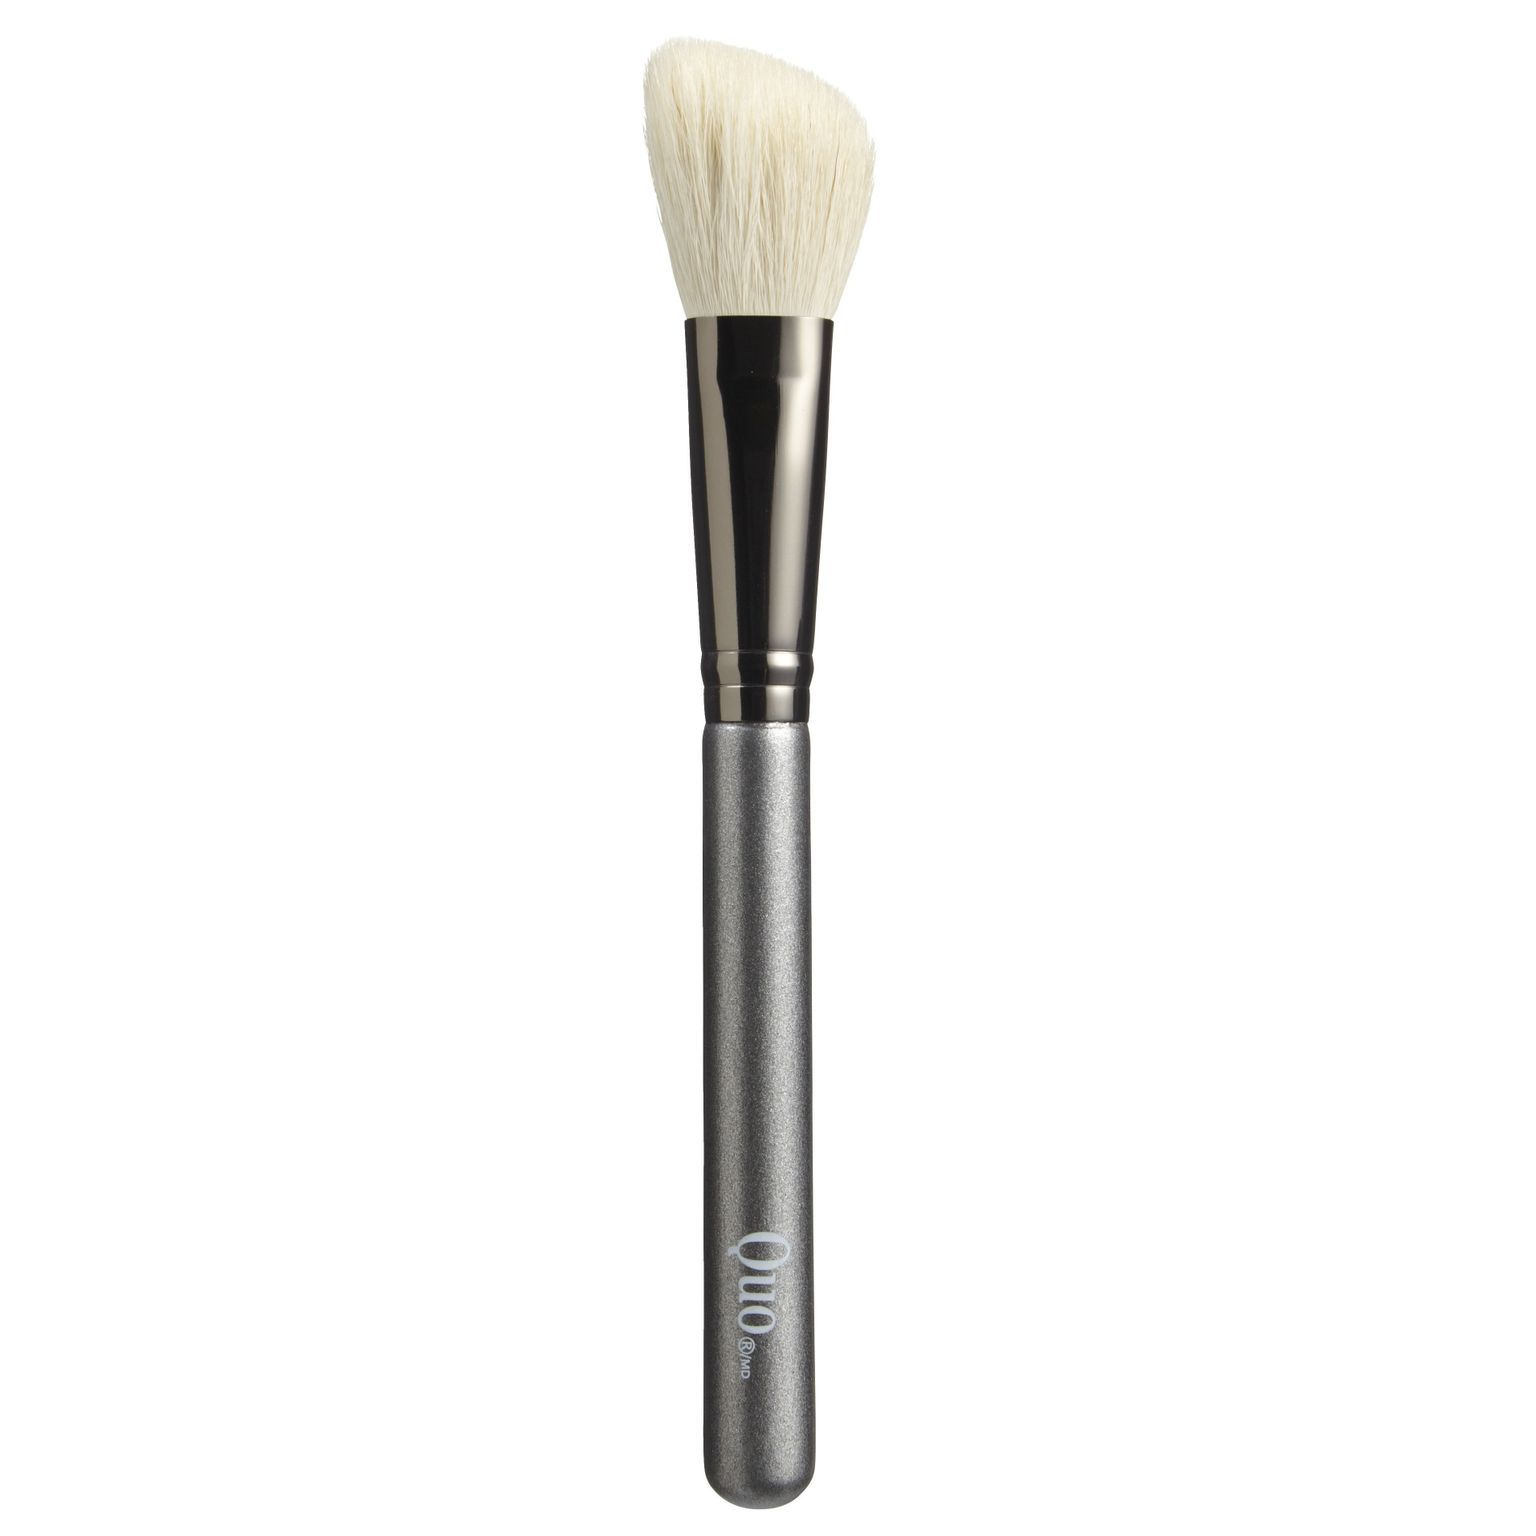 New Quo Complexion Perfection Brush Set Sculpt And Define Brush Set Amazon Ca Beauty